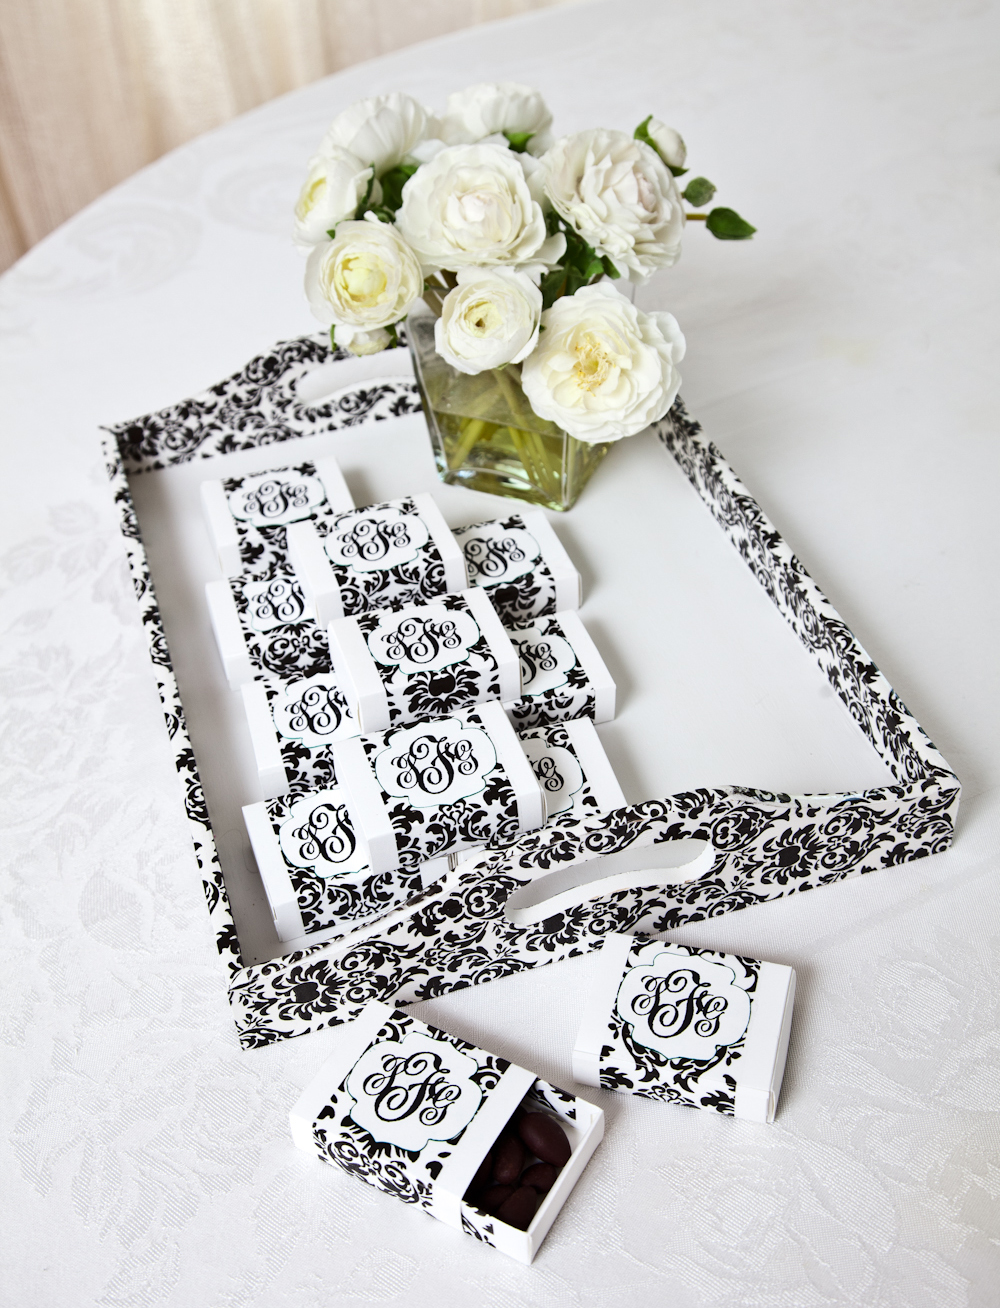 the Black Damask wedding, damask wedding ideas